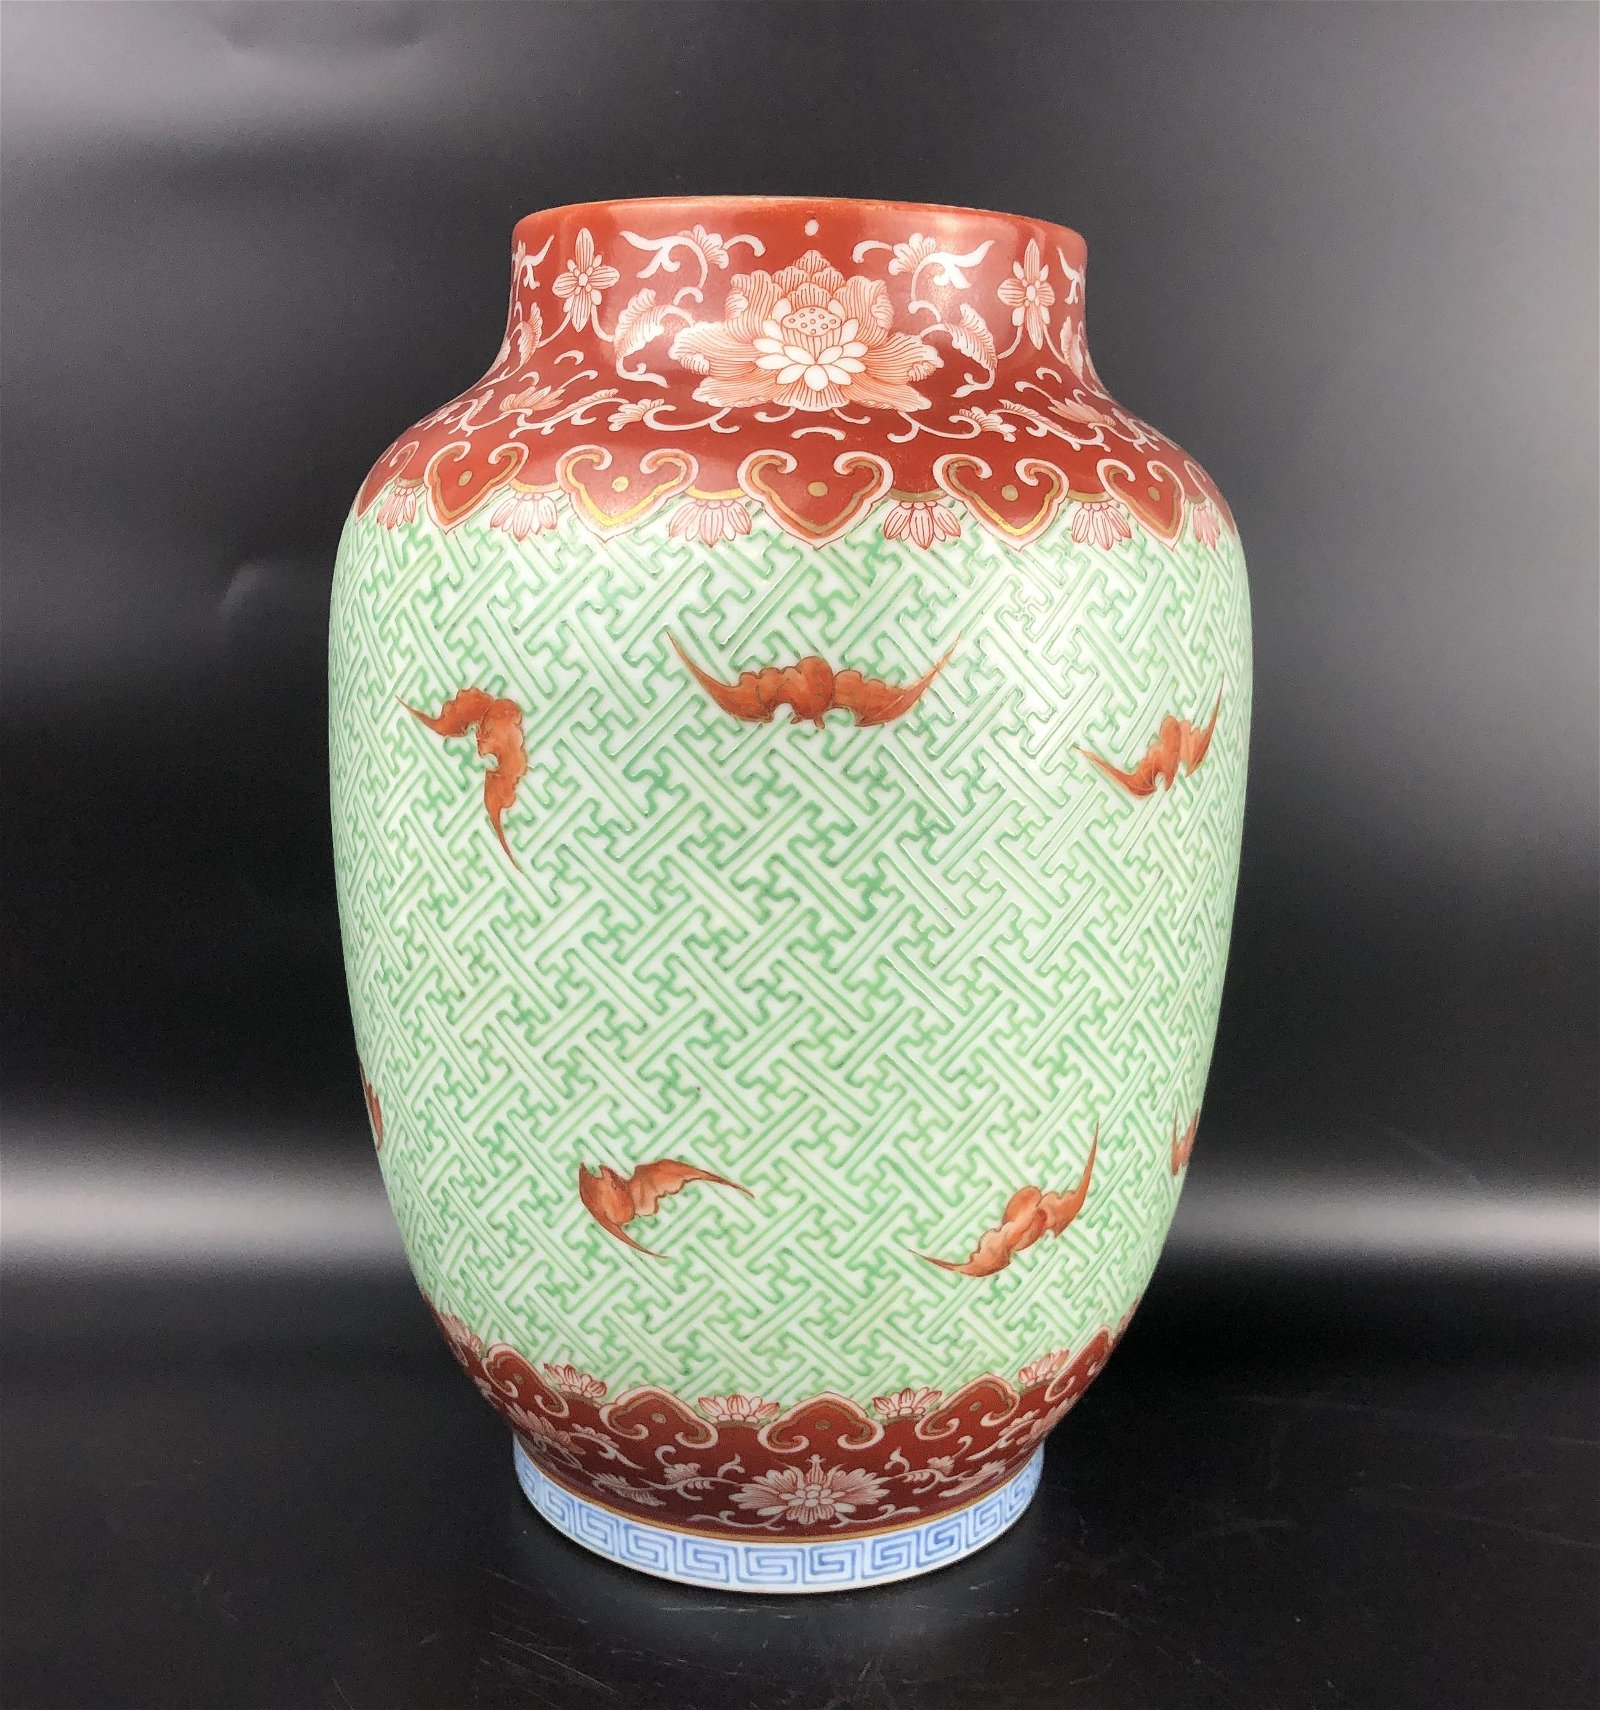 A CHINESE FAMILLE VERTE JAR, QING DYNASTY